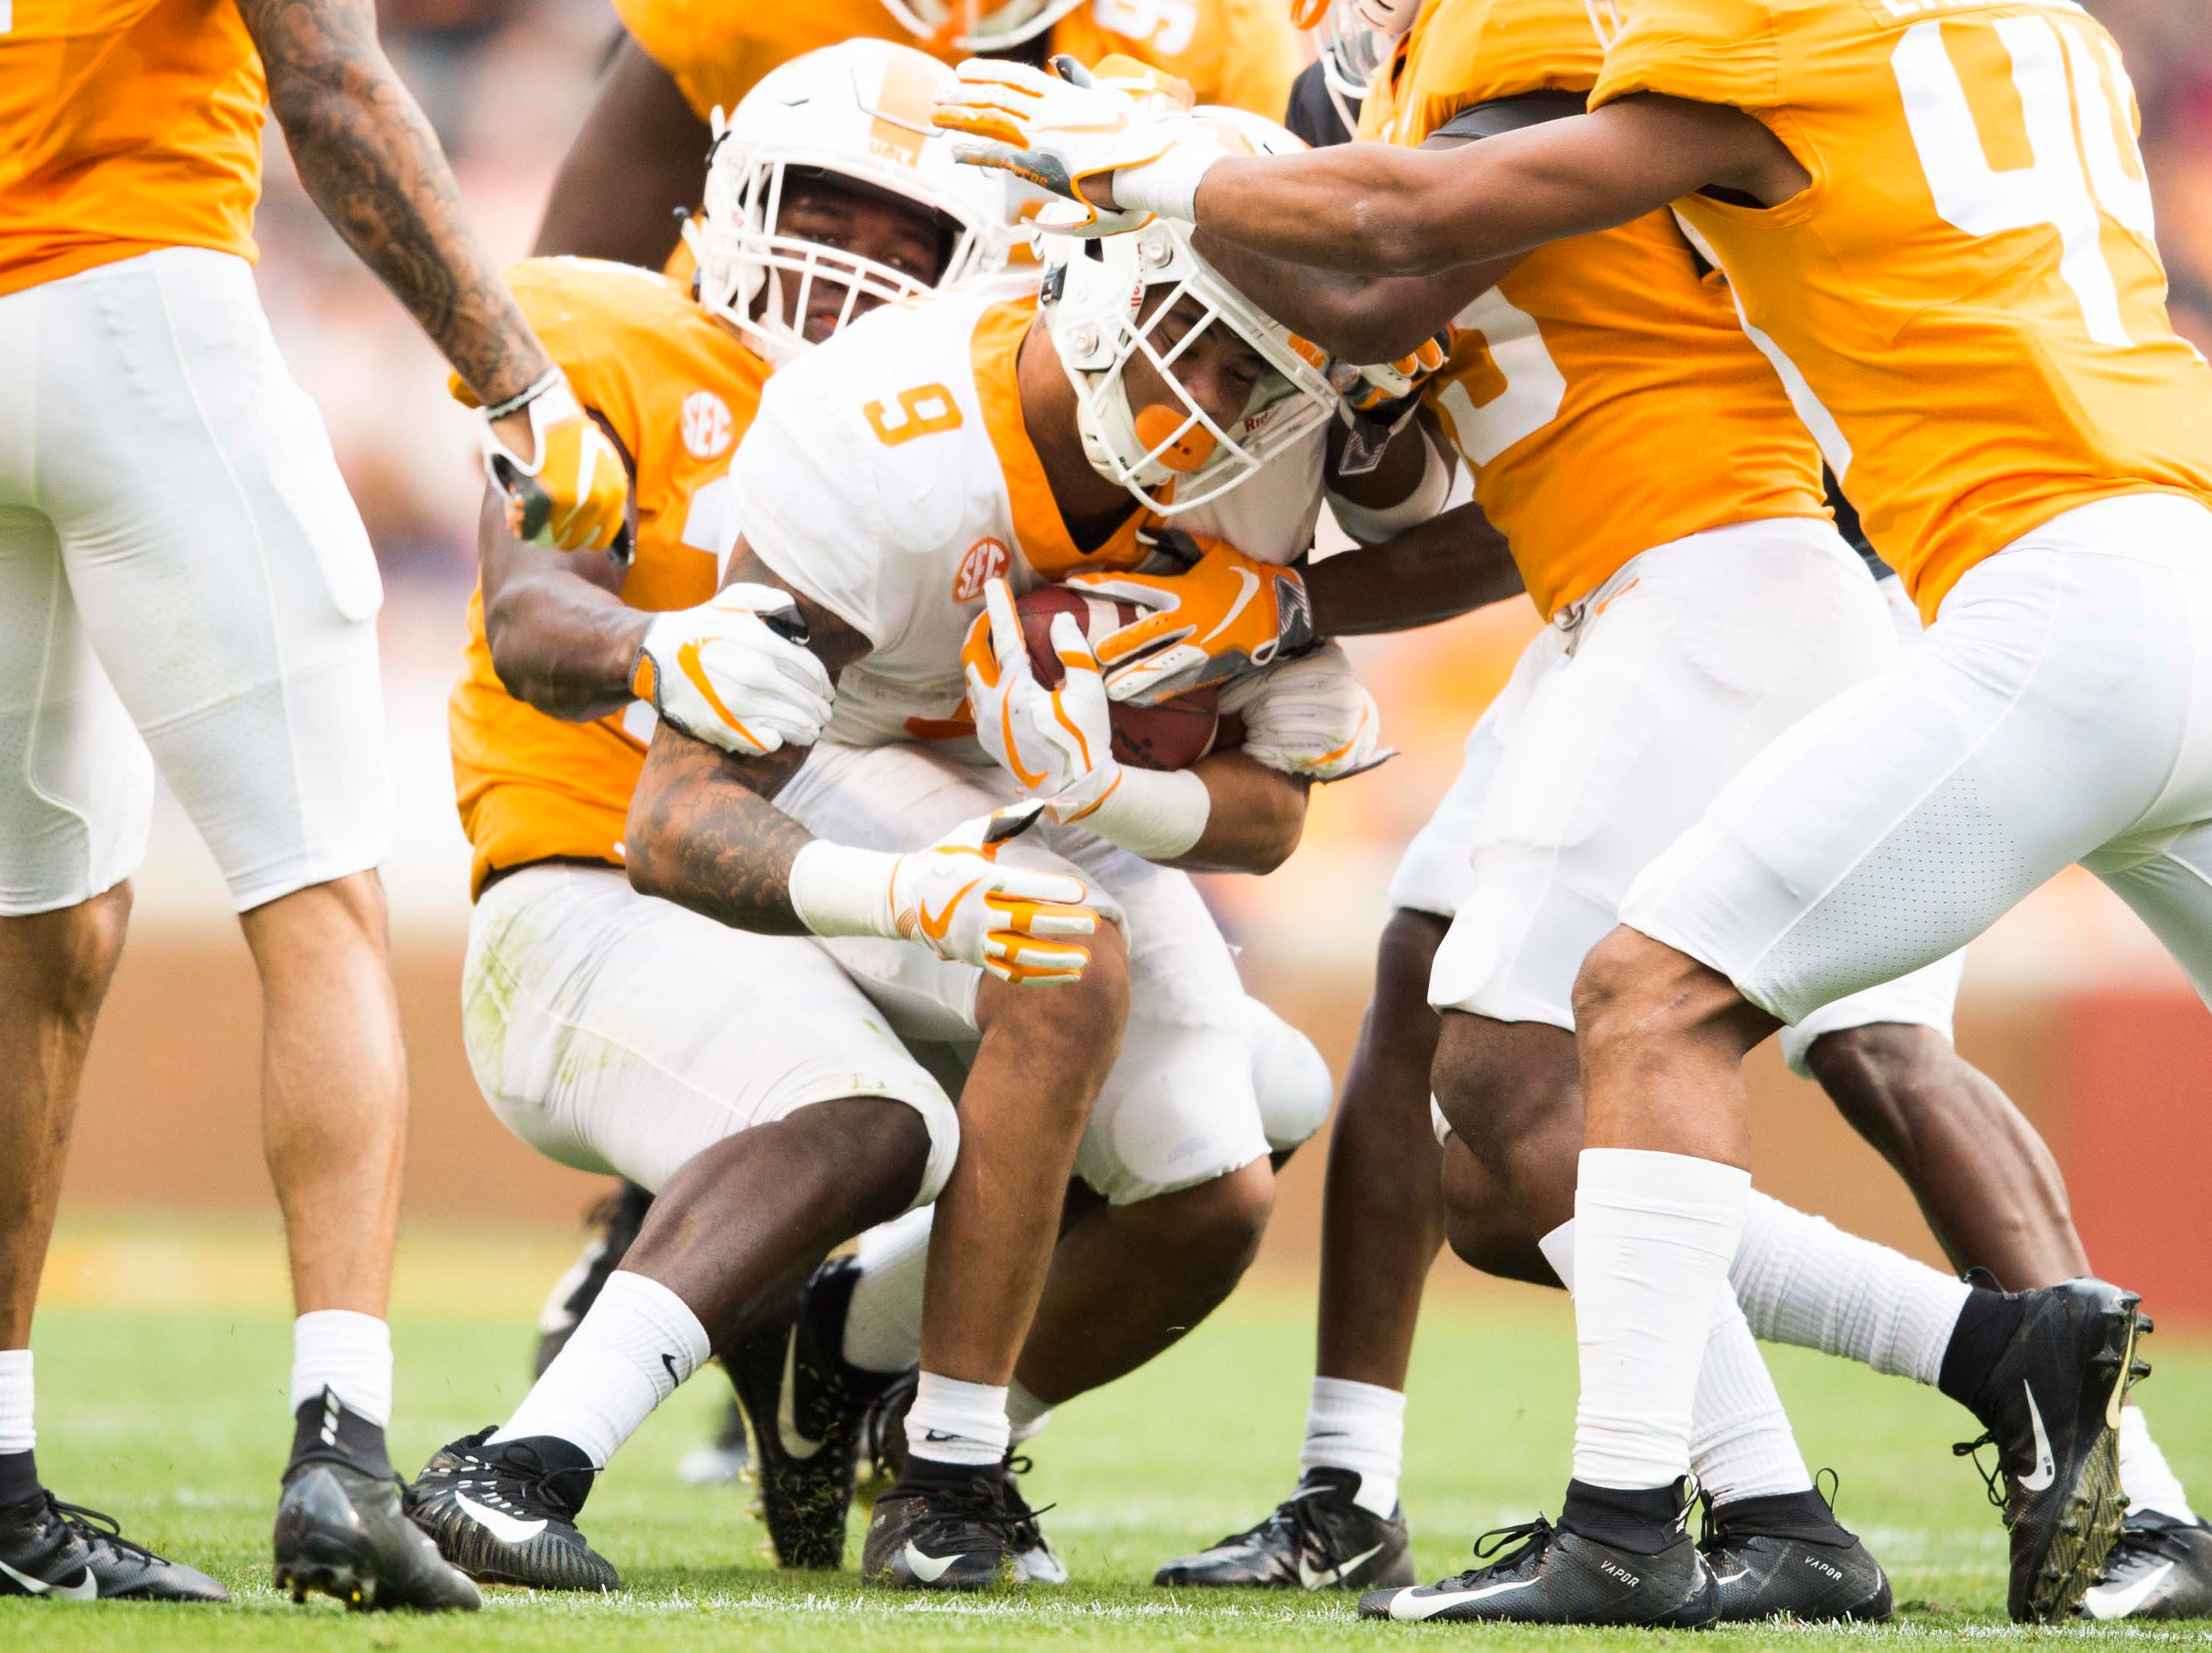 Tennessee running back Tim Jordan (9) is tackled during the Vols spring game in Neyland Stadium in Knoxville Saturday, April 13, 2019.